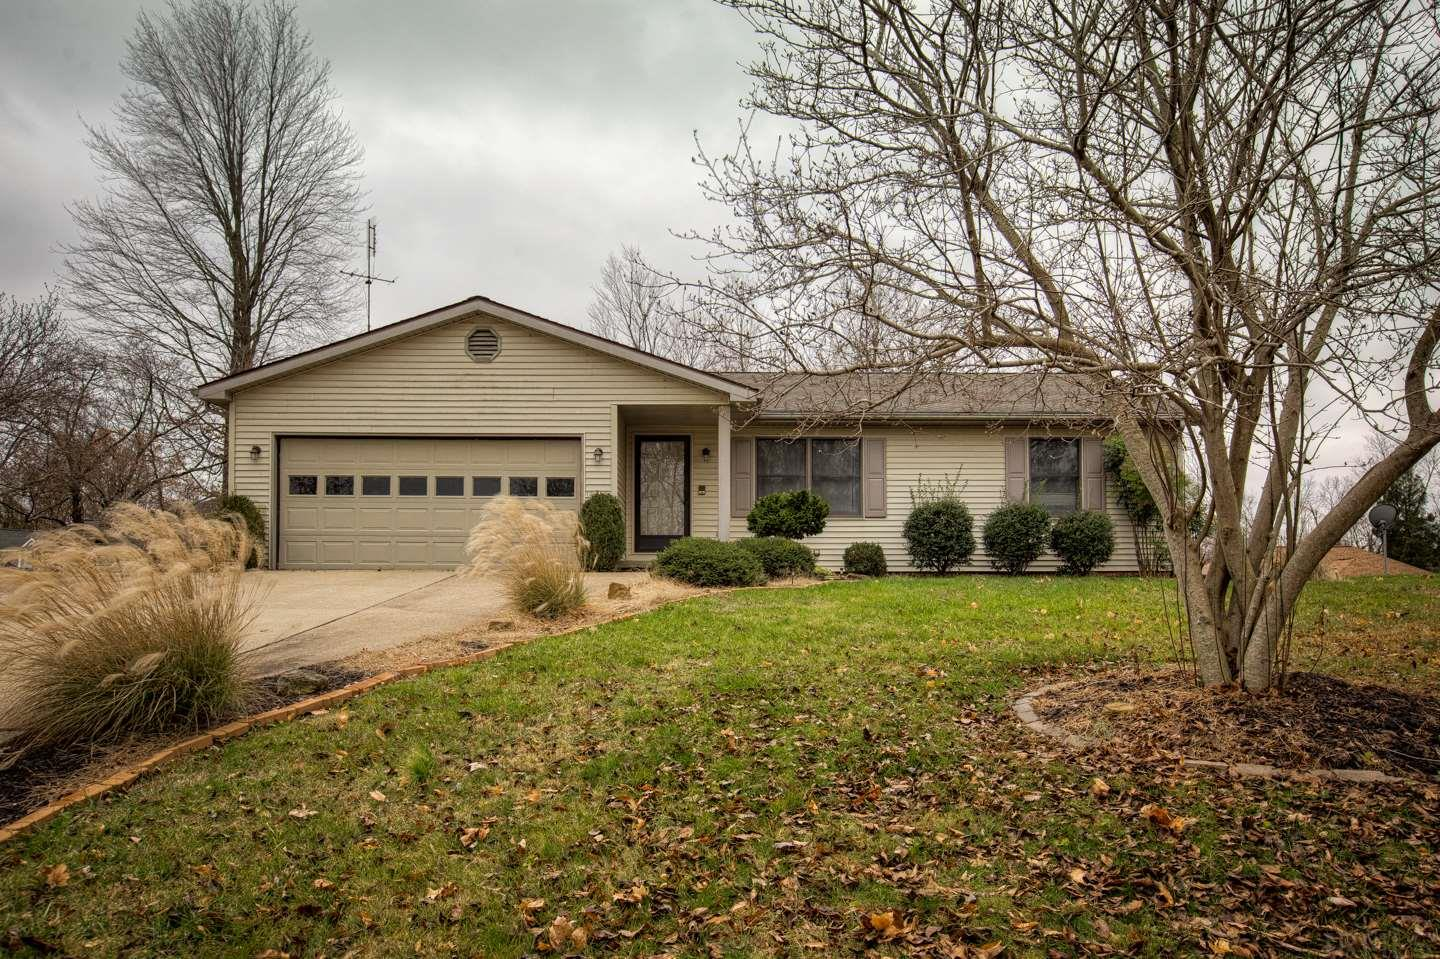 This beautiful lakeview ranch sits on 1 1/2 lots and offers a large kitchen with island and 2 living spaces with a fireplace.  There are also 3 bedrooms and 2 baths.  One of the bathrooms is off the master bedroom.  There is an attached garage with a small yard barn as well.  You are also within walking distance from the beach and recreation center.